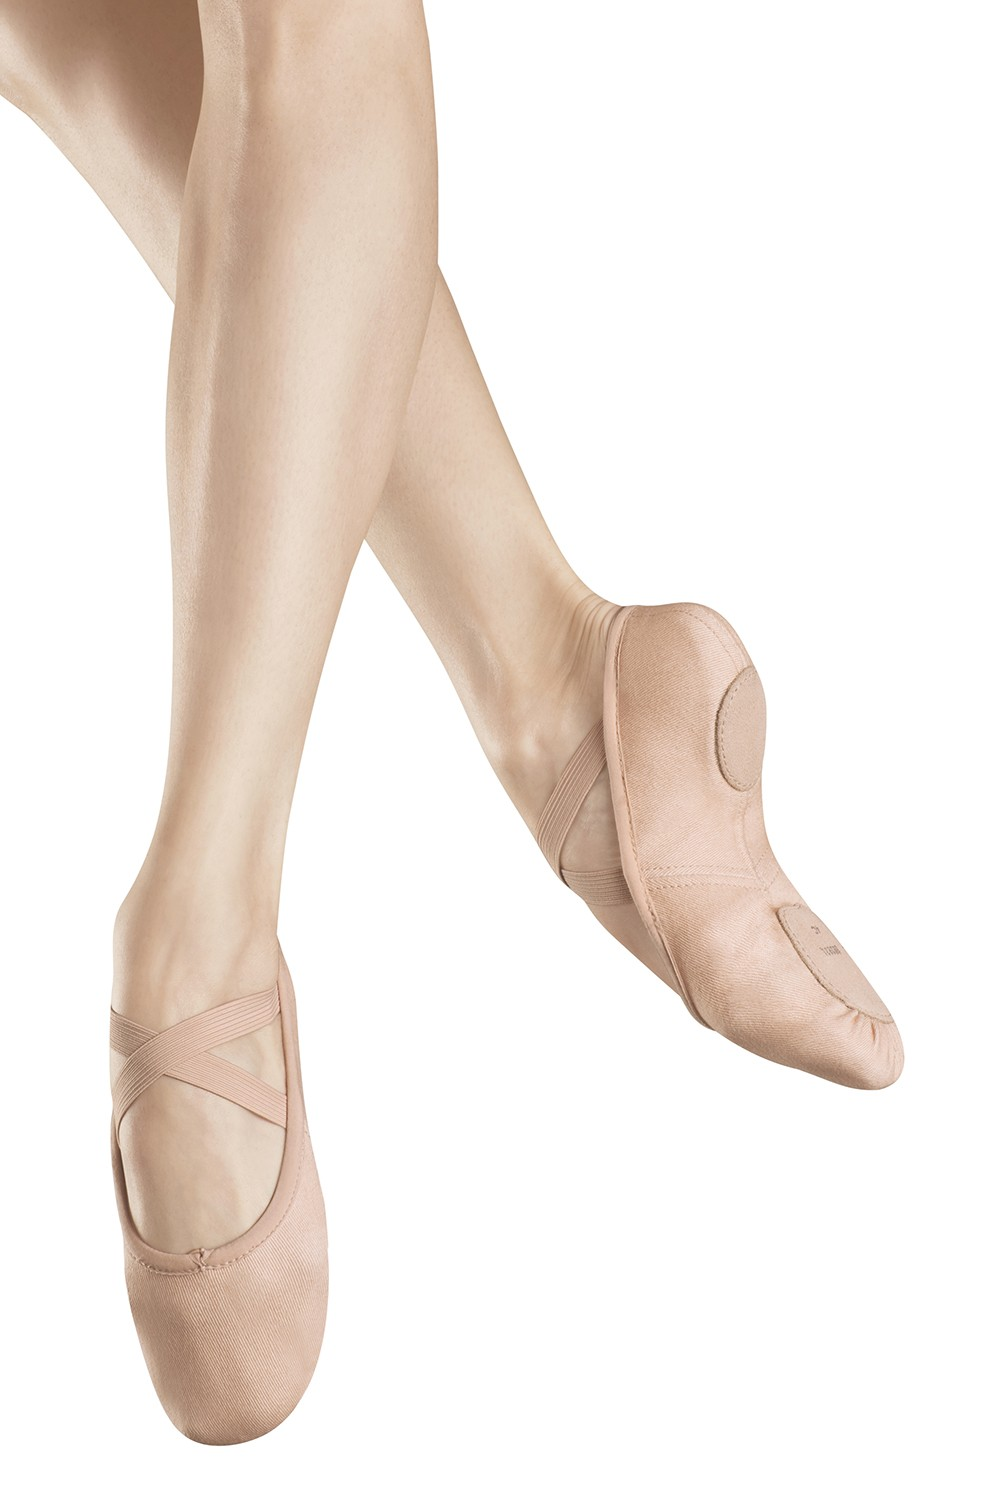 Zenith - Fille Girl's Ballet Shoes